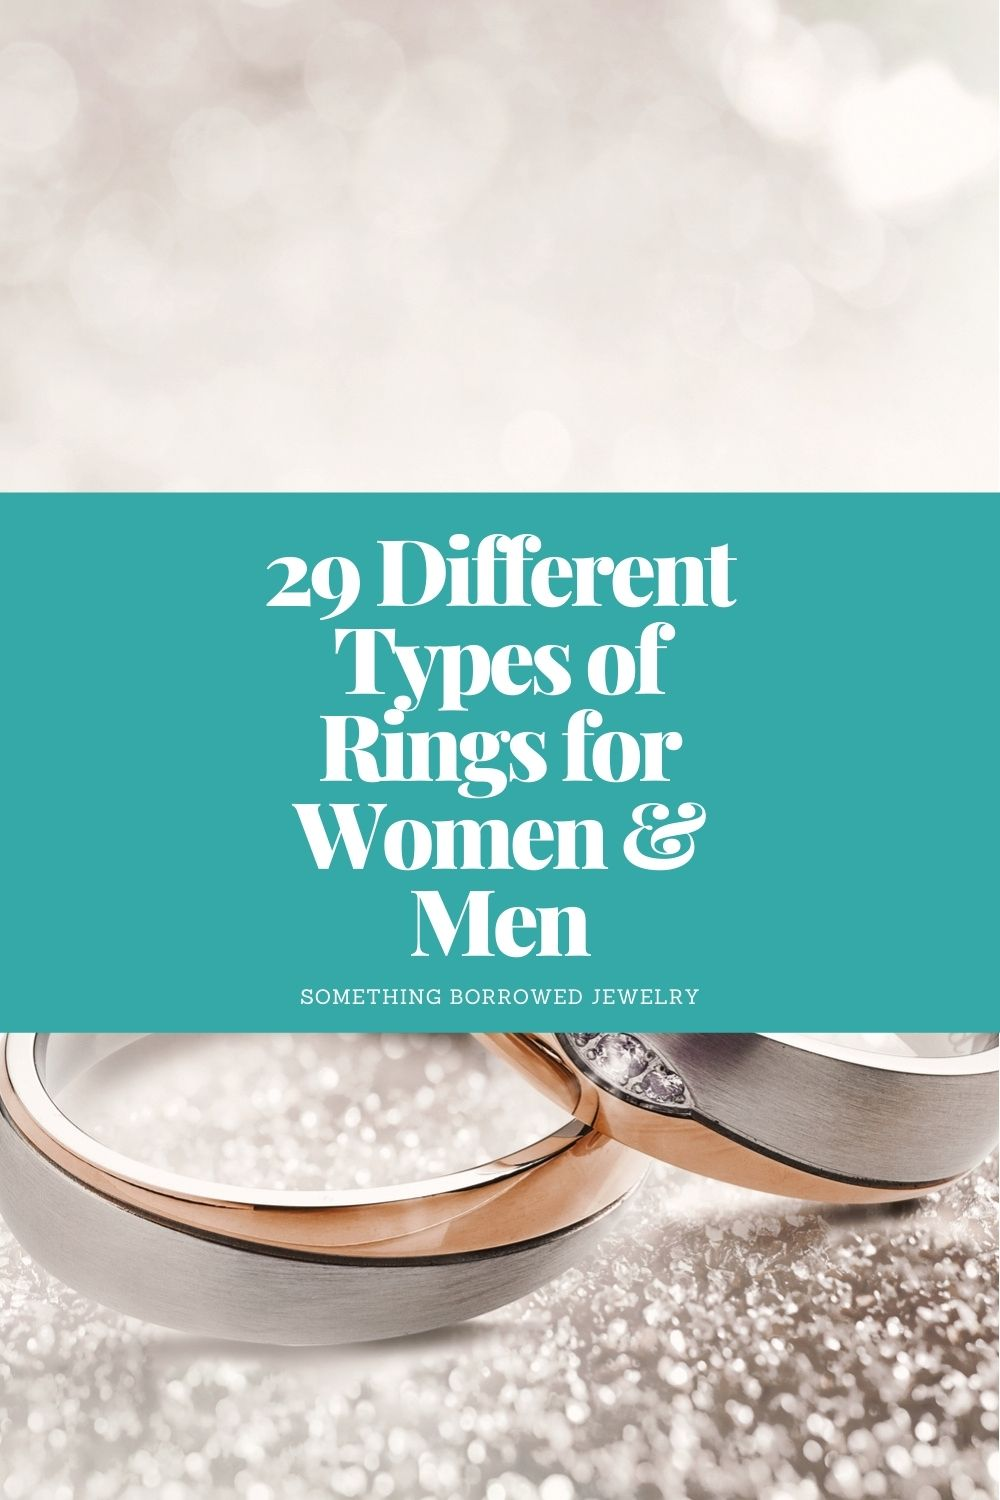 29 Different Types of Rings for Women & Men pin